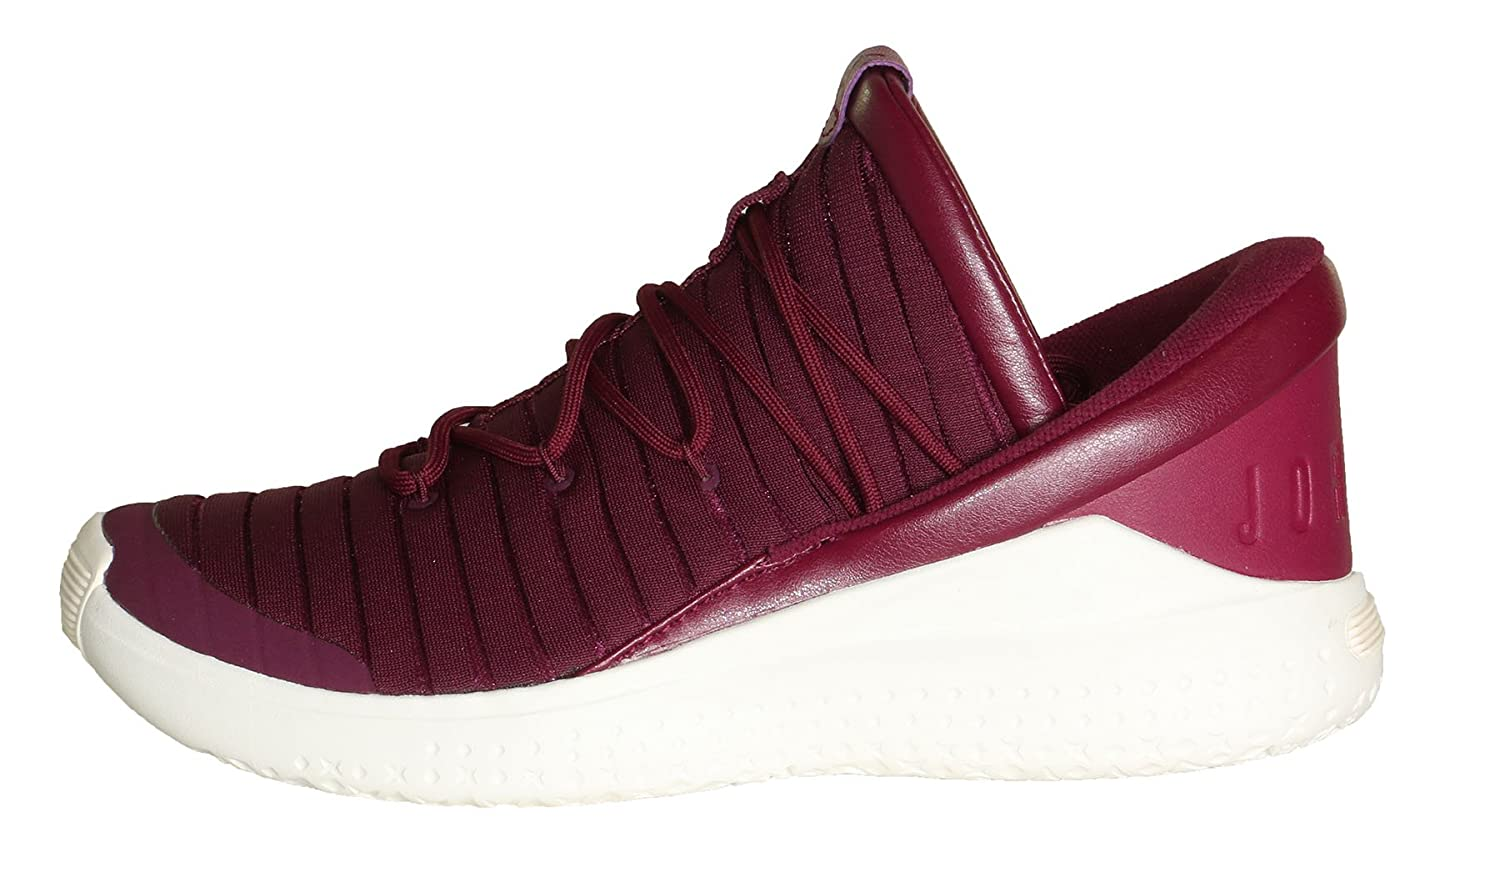 Jordan Nike Men's 10 Flight Luxe Training Shoe B07CRC5XLK 10 Men's B(M) US|Bordeaux/Bordeaux-sail 4df170